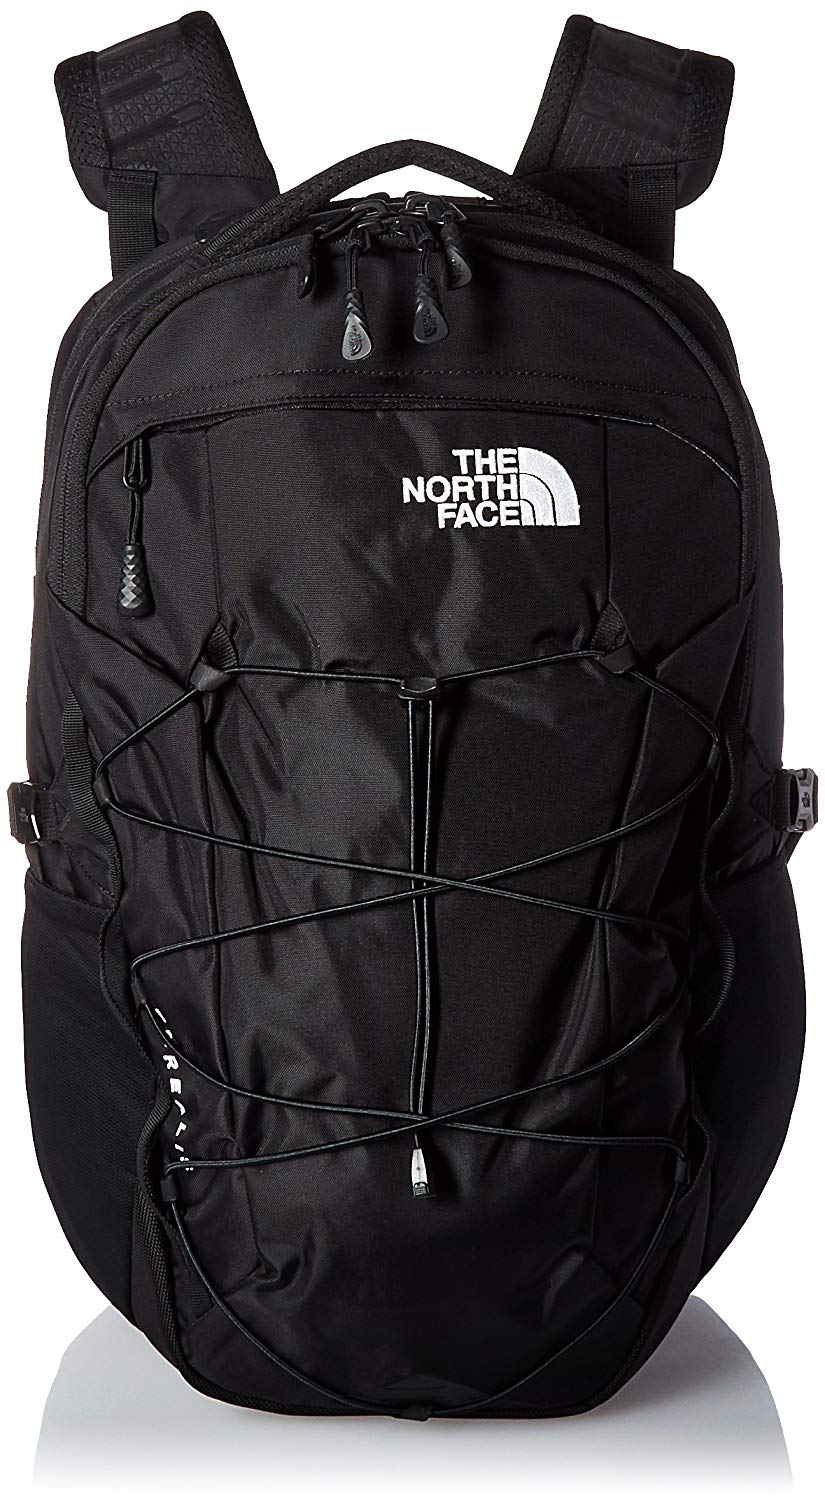 1b6e478a2 The North Face Borealis Backpack. Great for heavy-duty use, whether you're  planning a rugged excursion or just lugging around textbooks and a laptop.